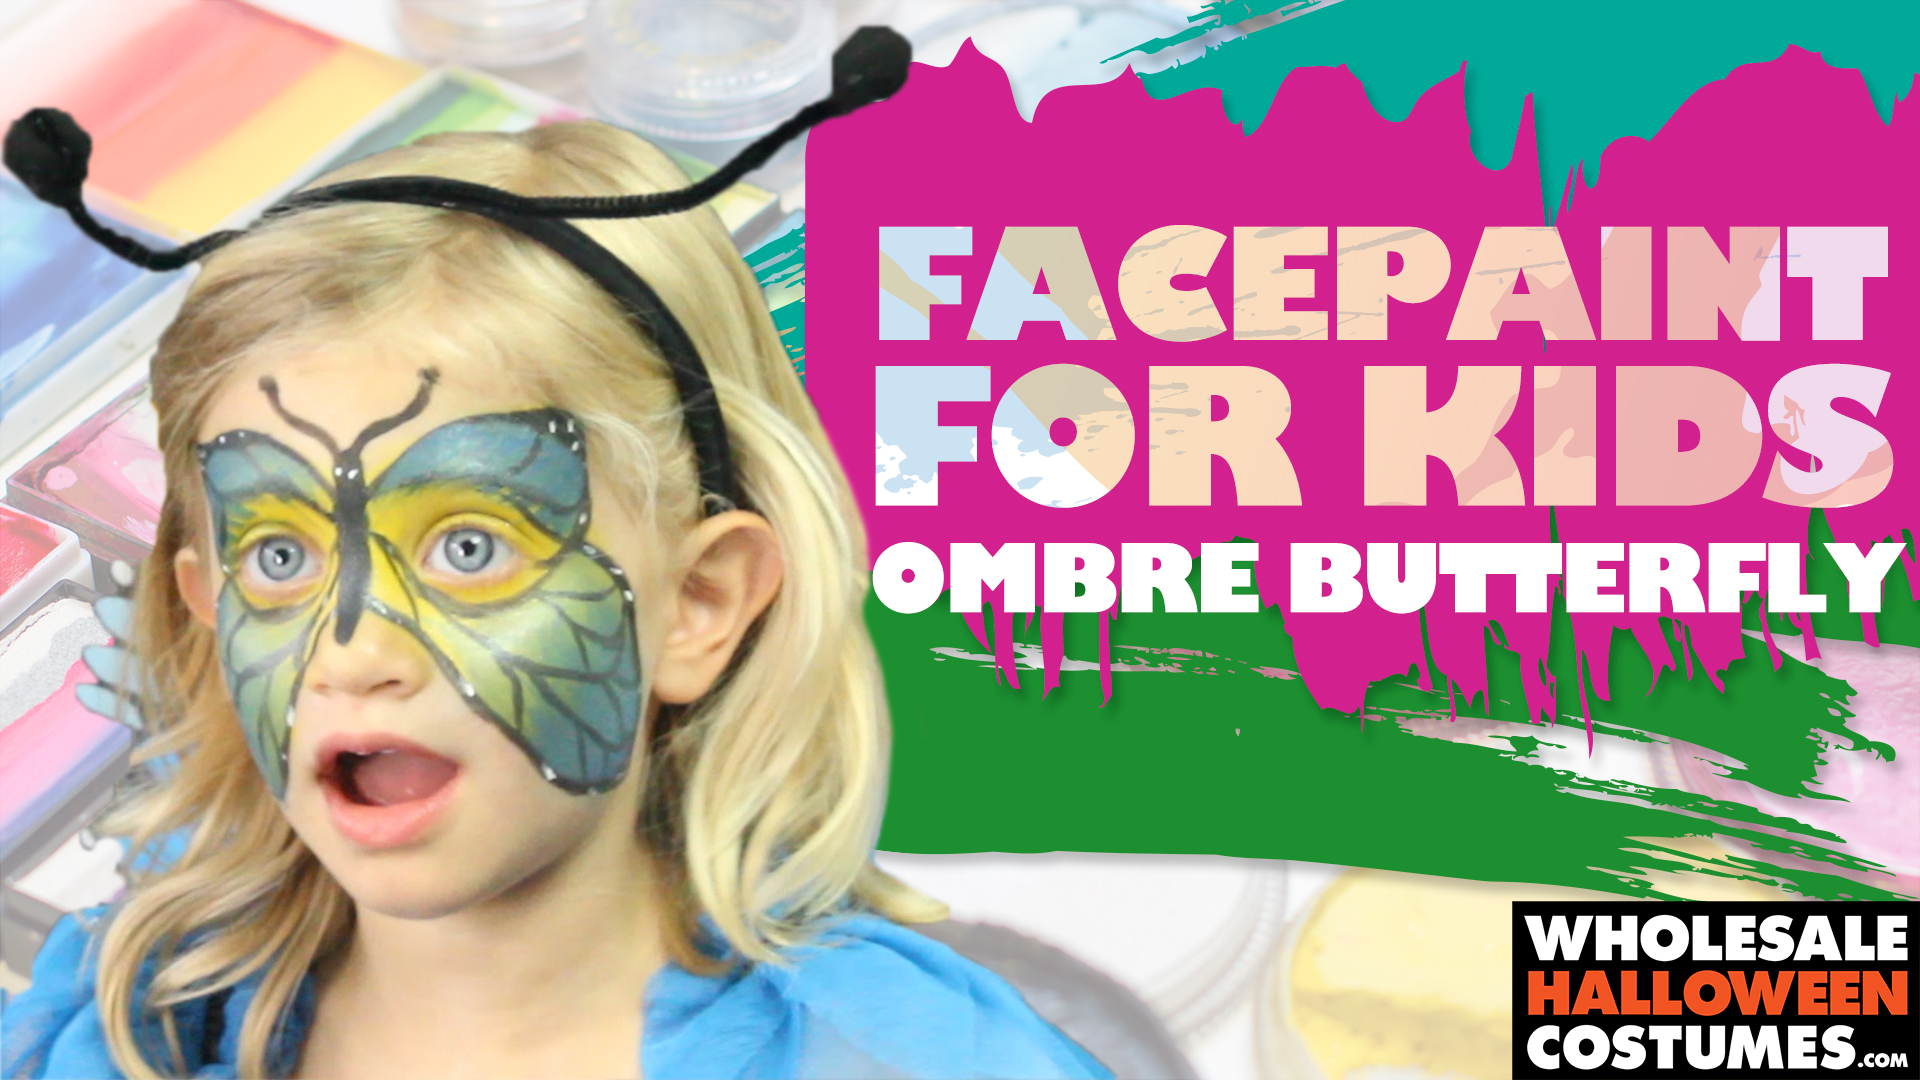 feature_kids_ombrebutterfly